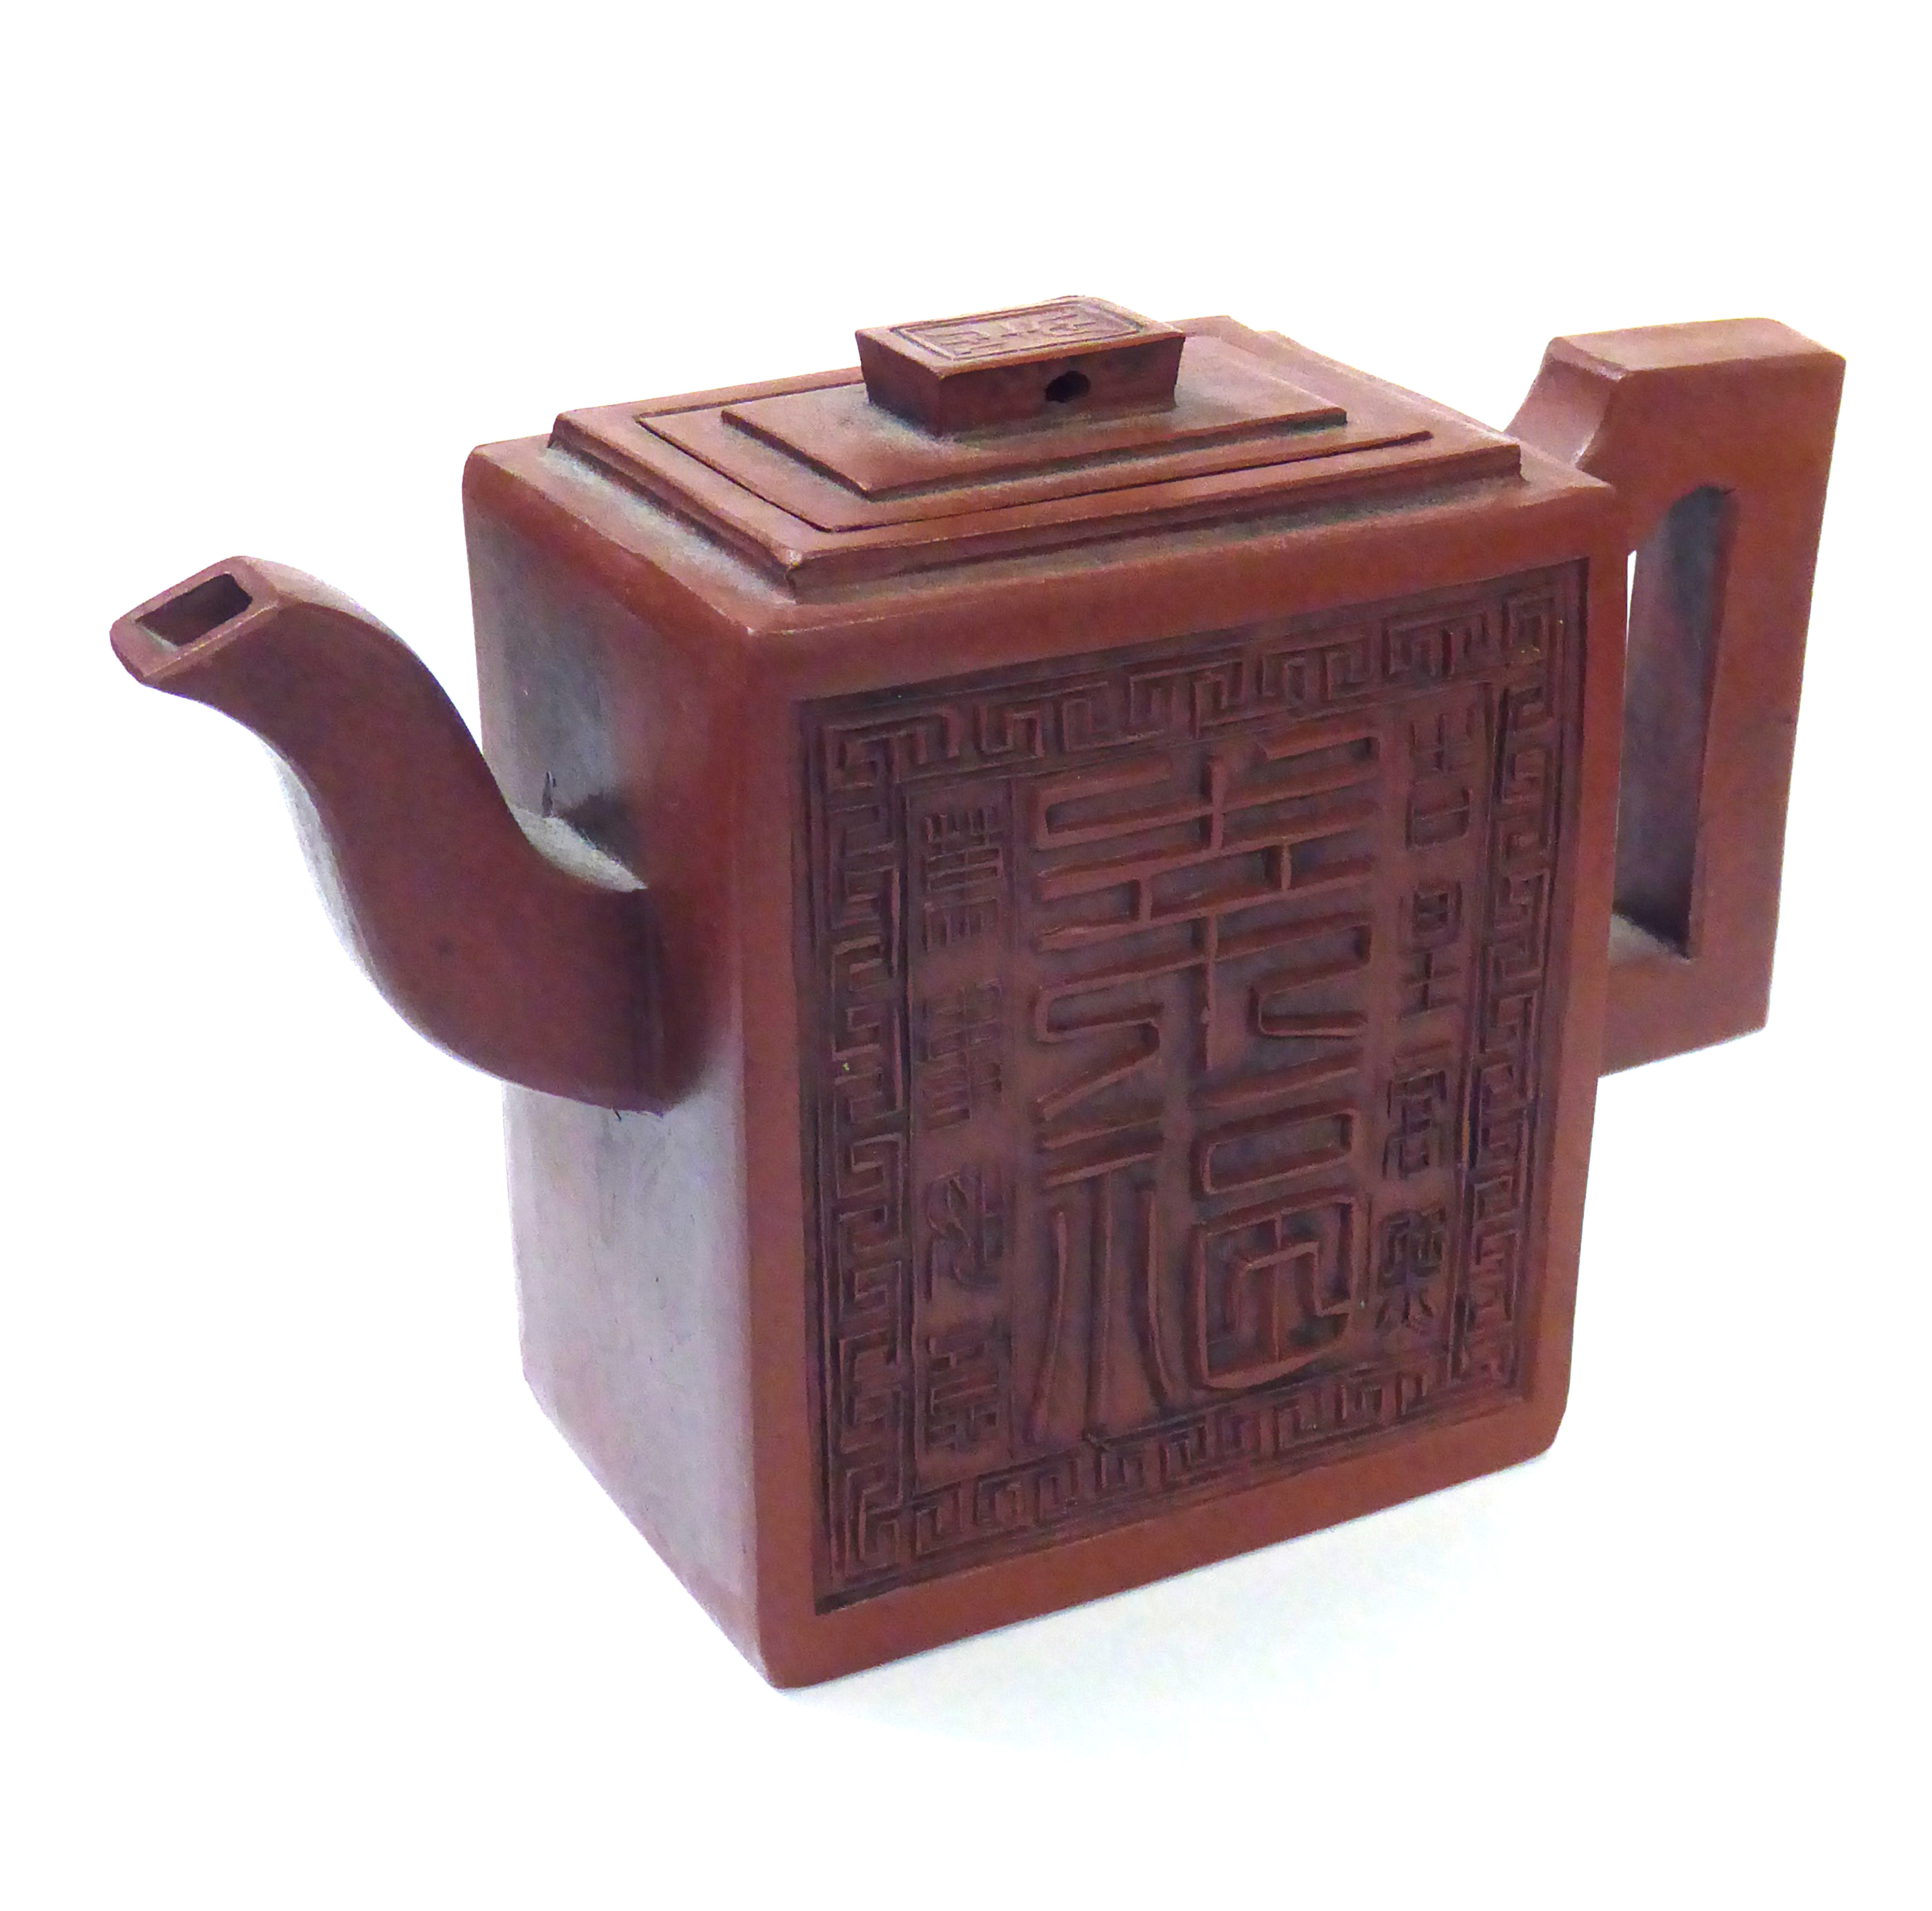 Lot 168 - A CHINESE YIXING TERRACOTTA TEAPOT Square form with raised Chinese characters and a four-character